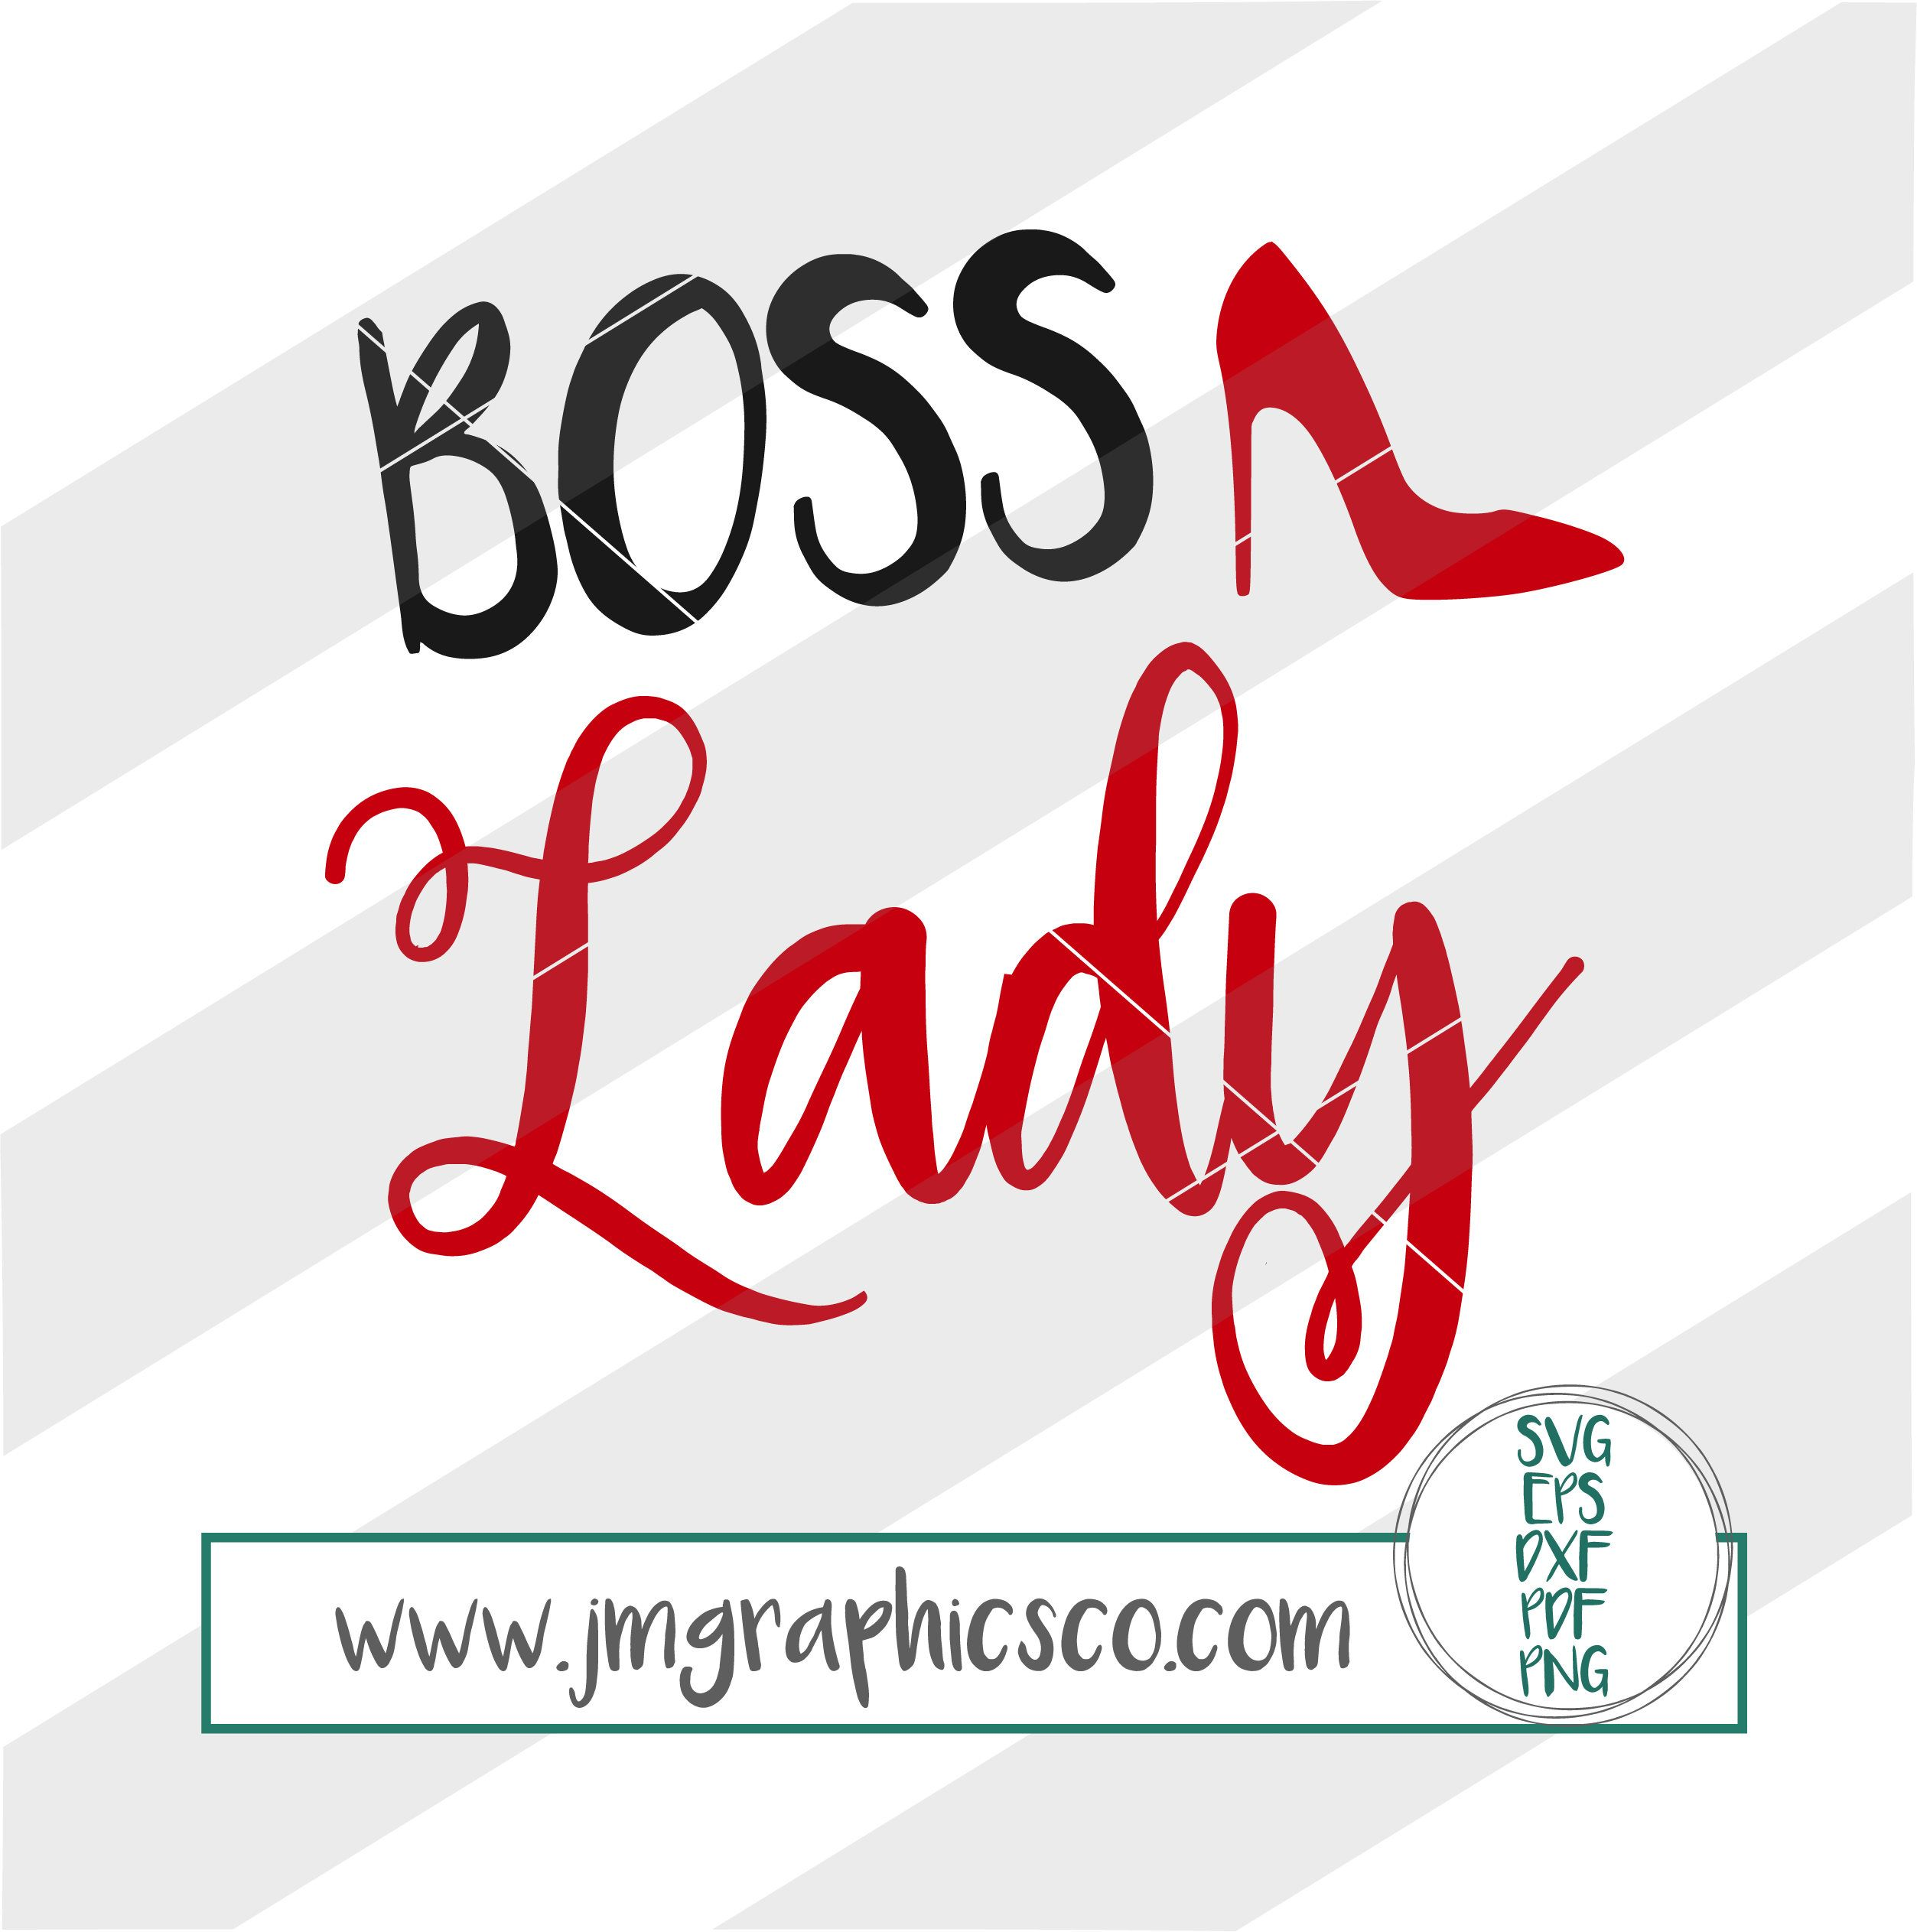 Boss Lady Day Png Free Boss Lady Day Png Transparent